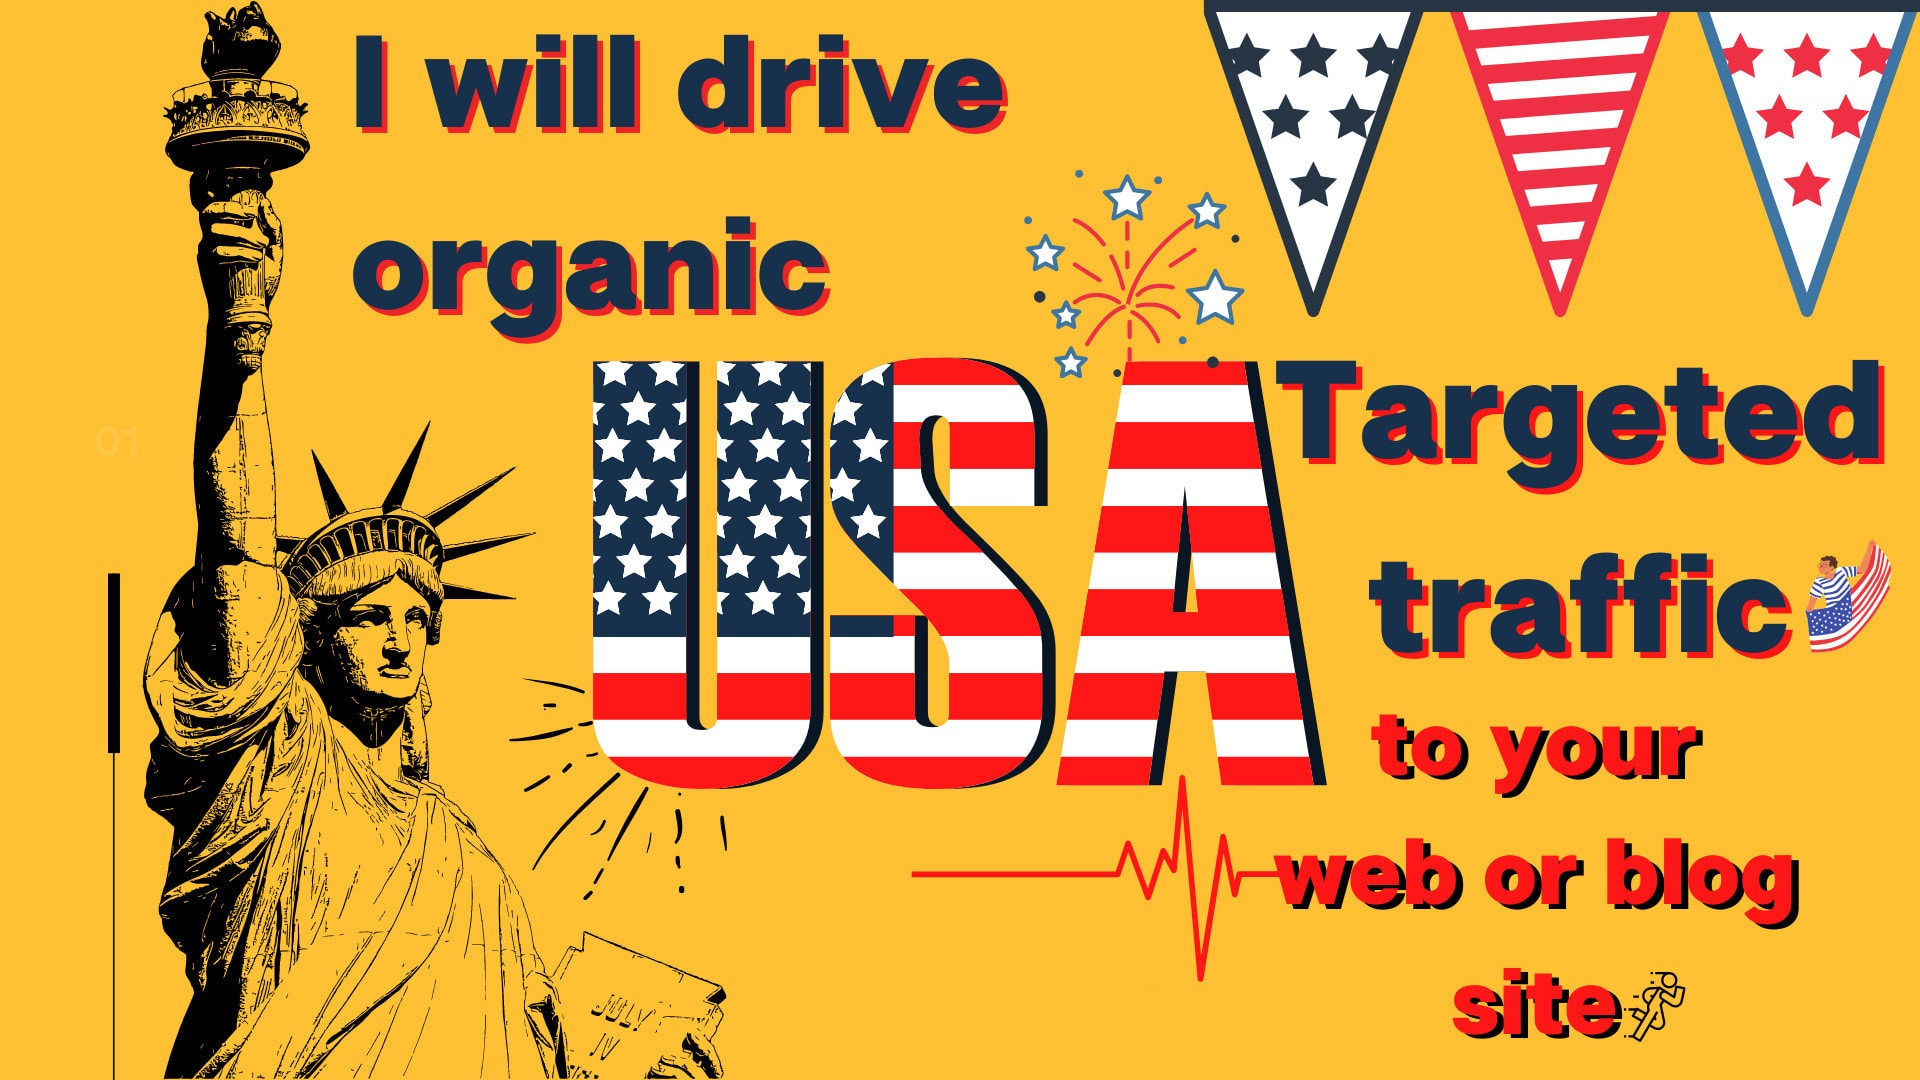 I will drive 2000 organic USA targeted traffic to your web or blog site